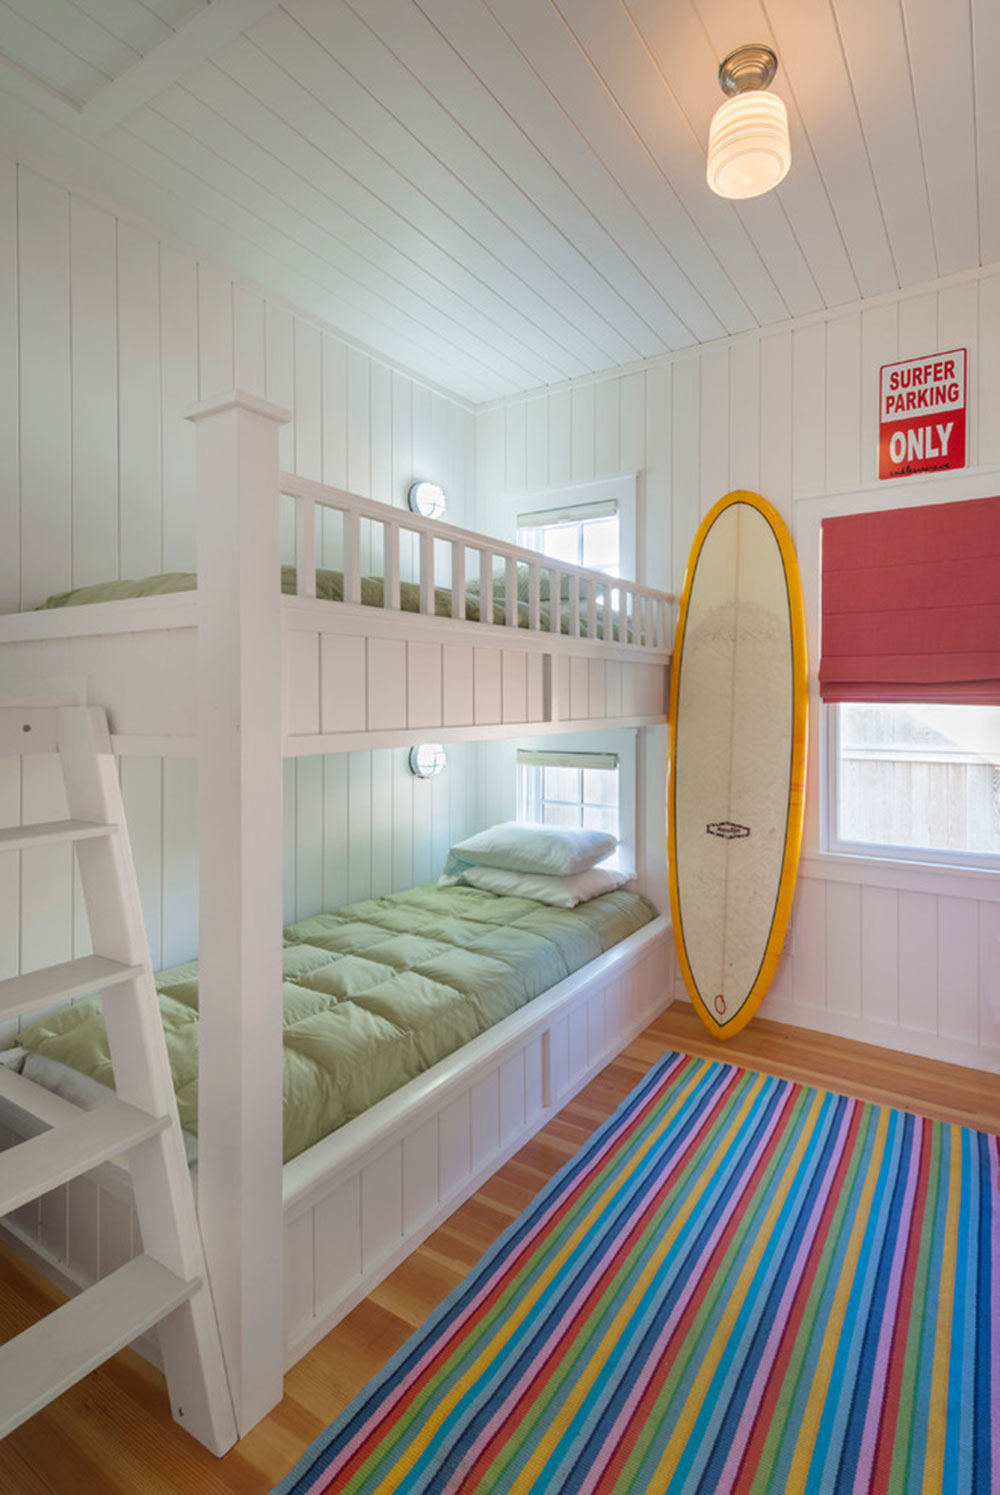 Your-Child-Will-Love-These-Bunk-Beds-With-